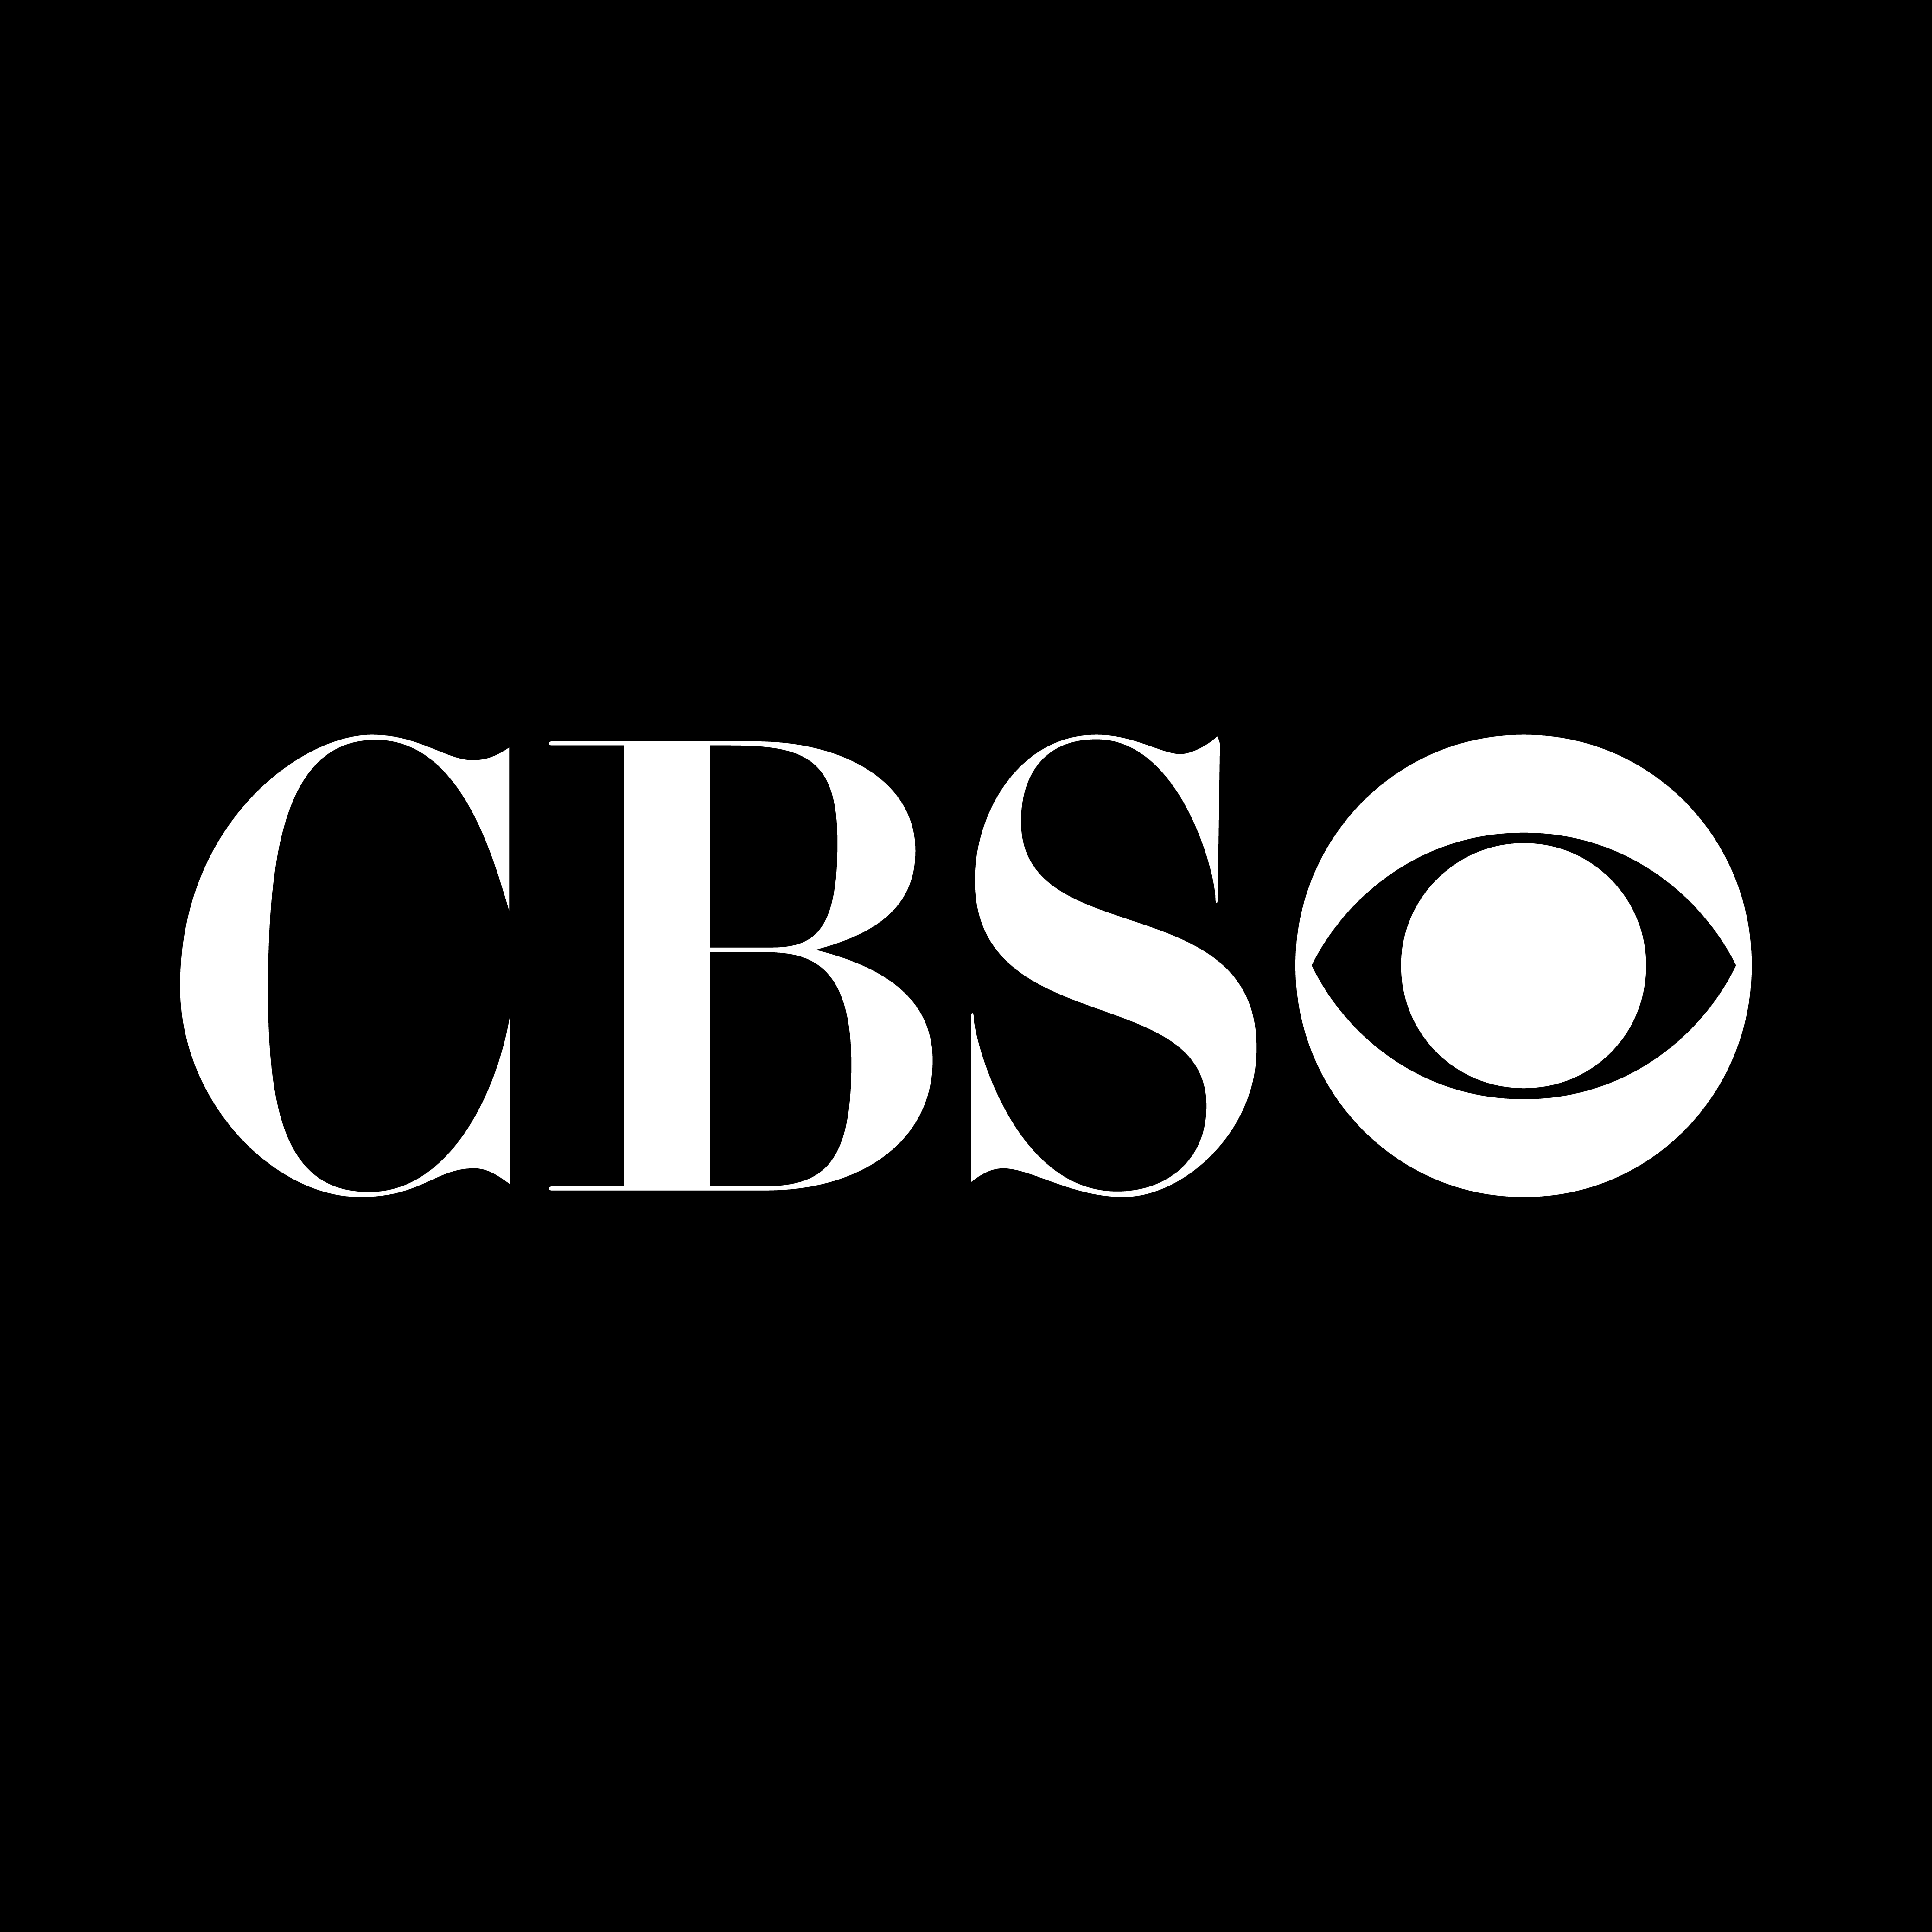 CBS Identity, 1960s - Fonts In Use